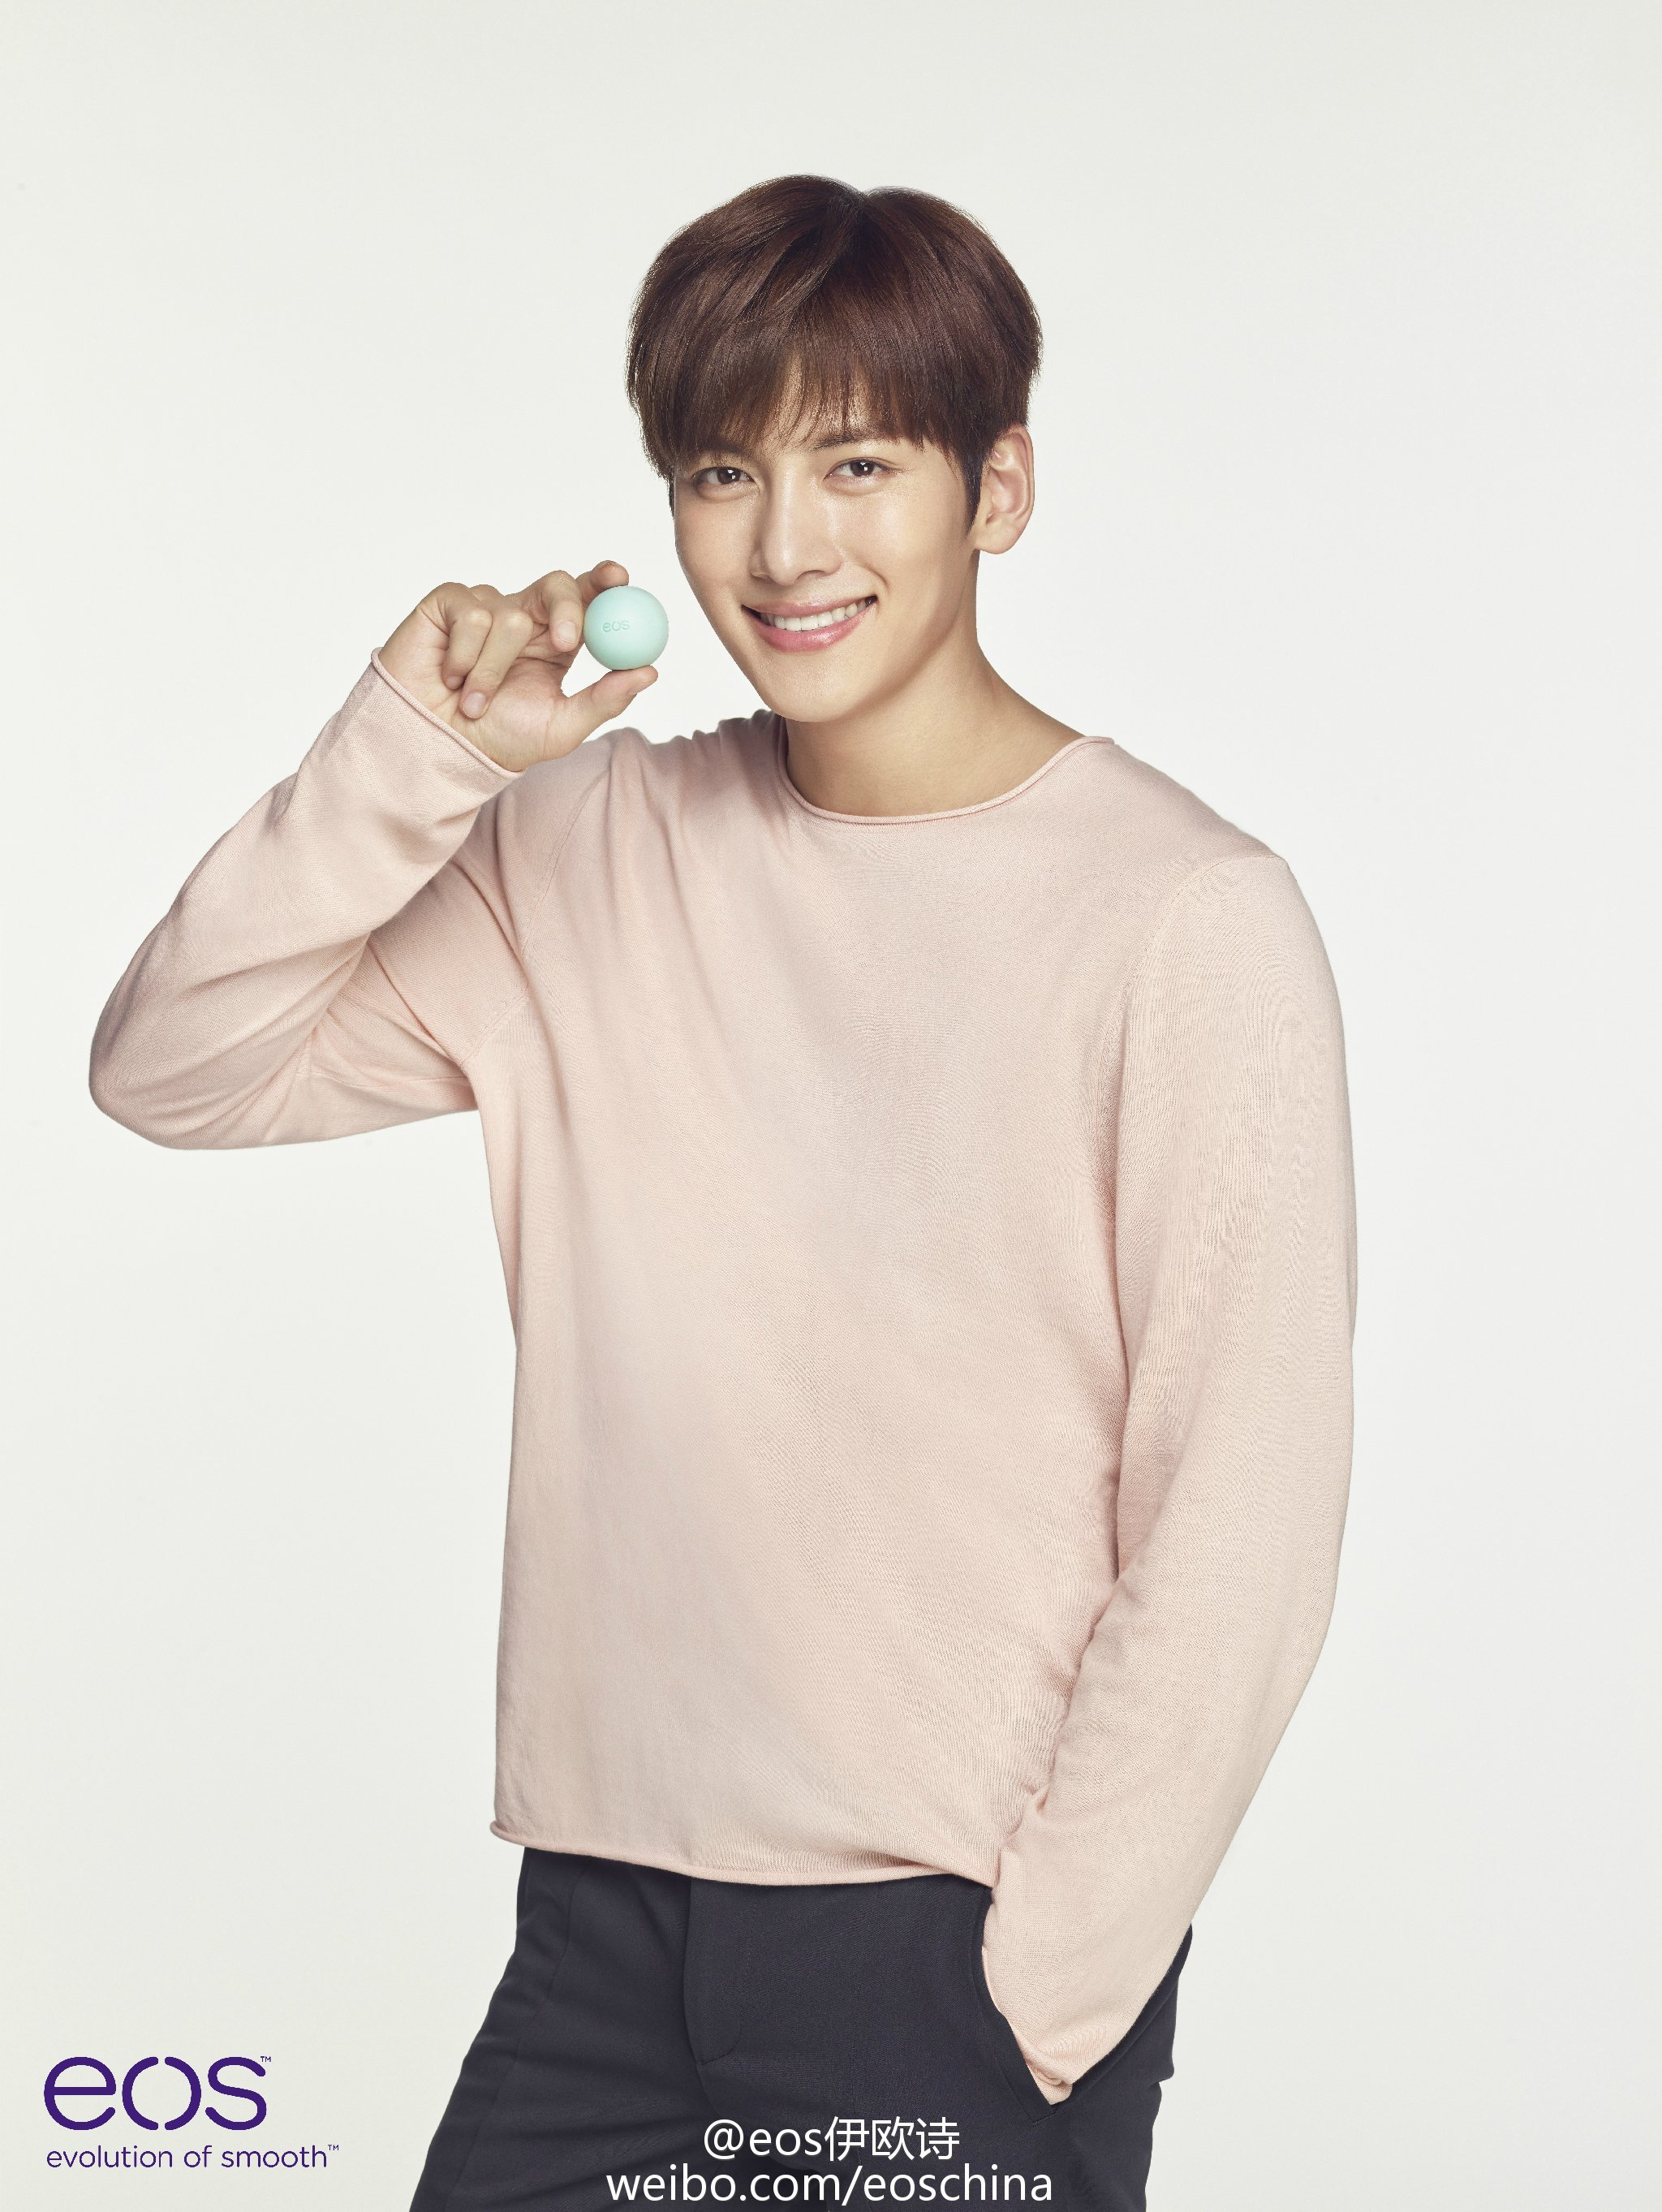 Ji Chang Wook Hd Wallpaper Cf Ji Chang Wook Models For Eos China Updated With